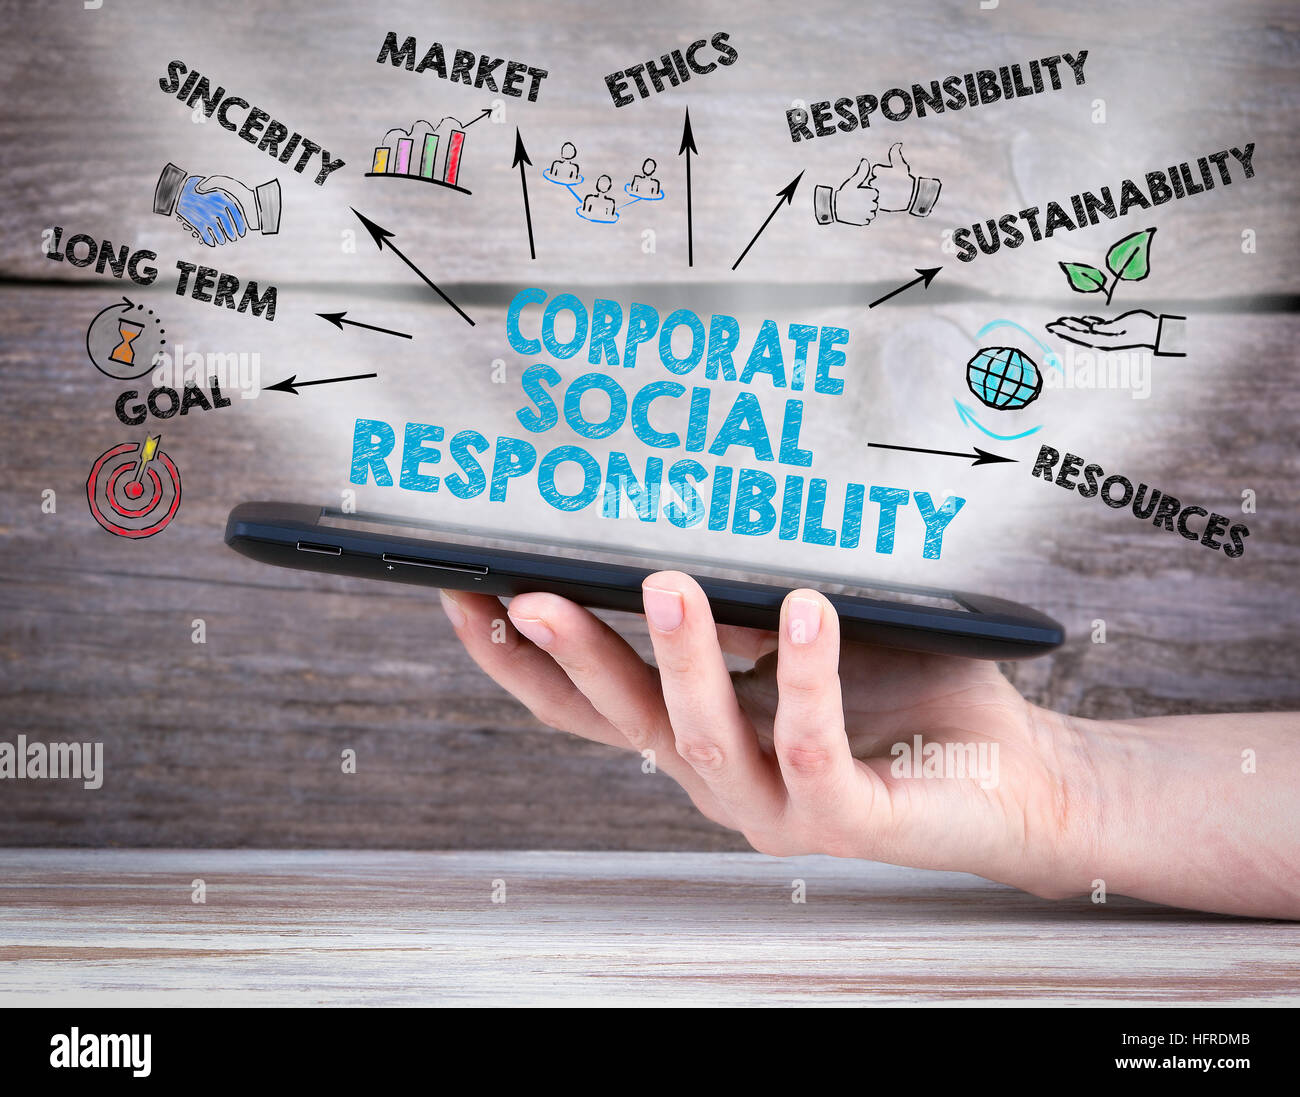 Corporate Social Responsibility Concept. Tablet computer in the hand. Old wooden background. - Stock Image